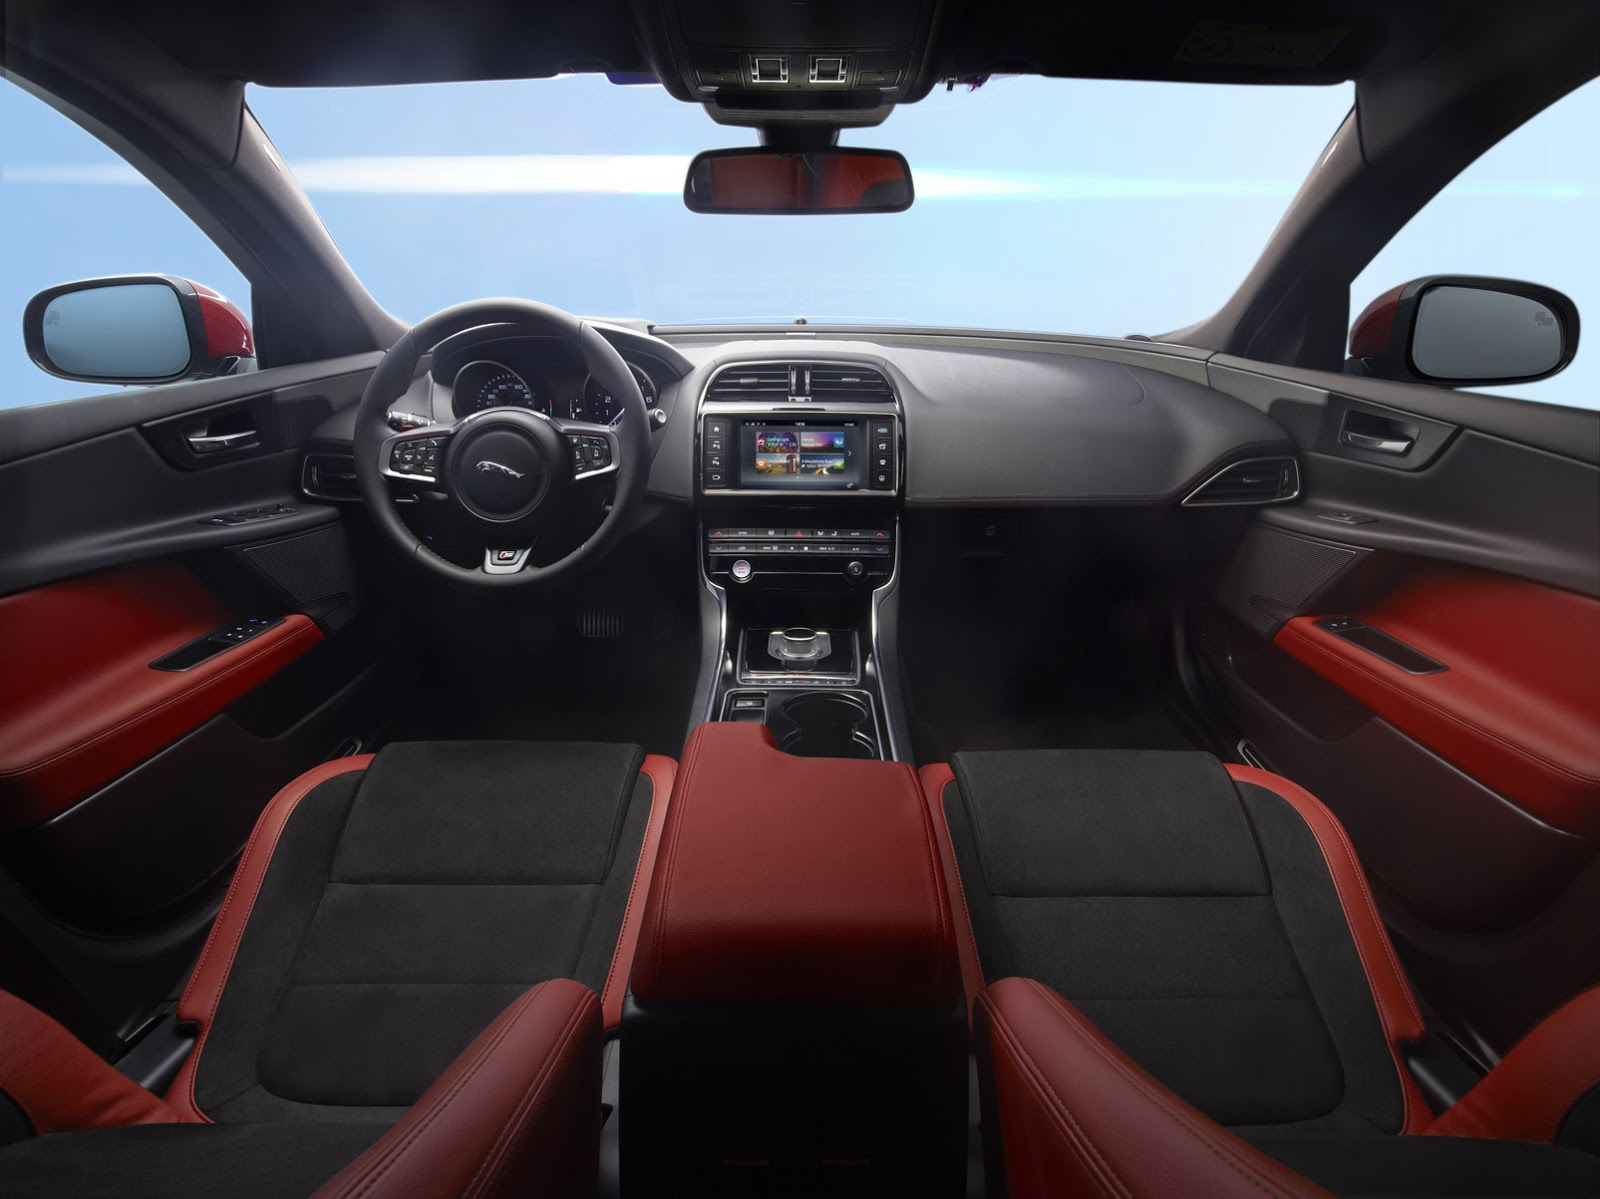 New-2016-Jaguar-XE-officially-revealed-Images-and-details-21